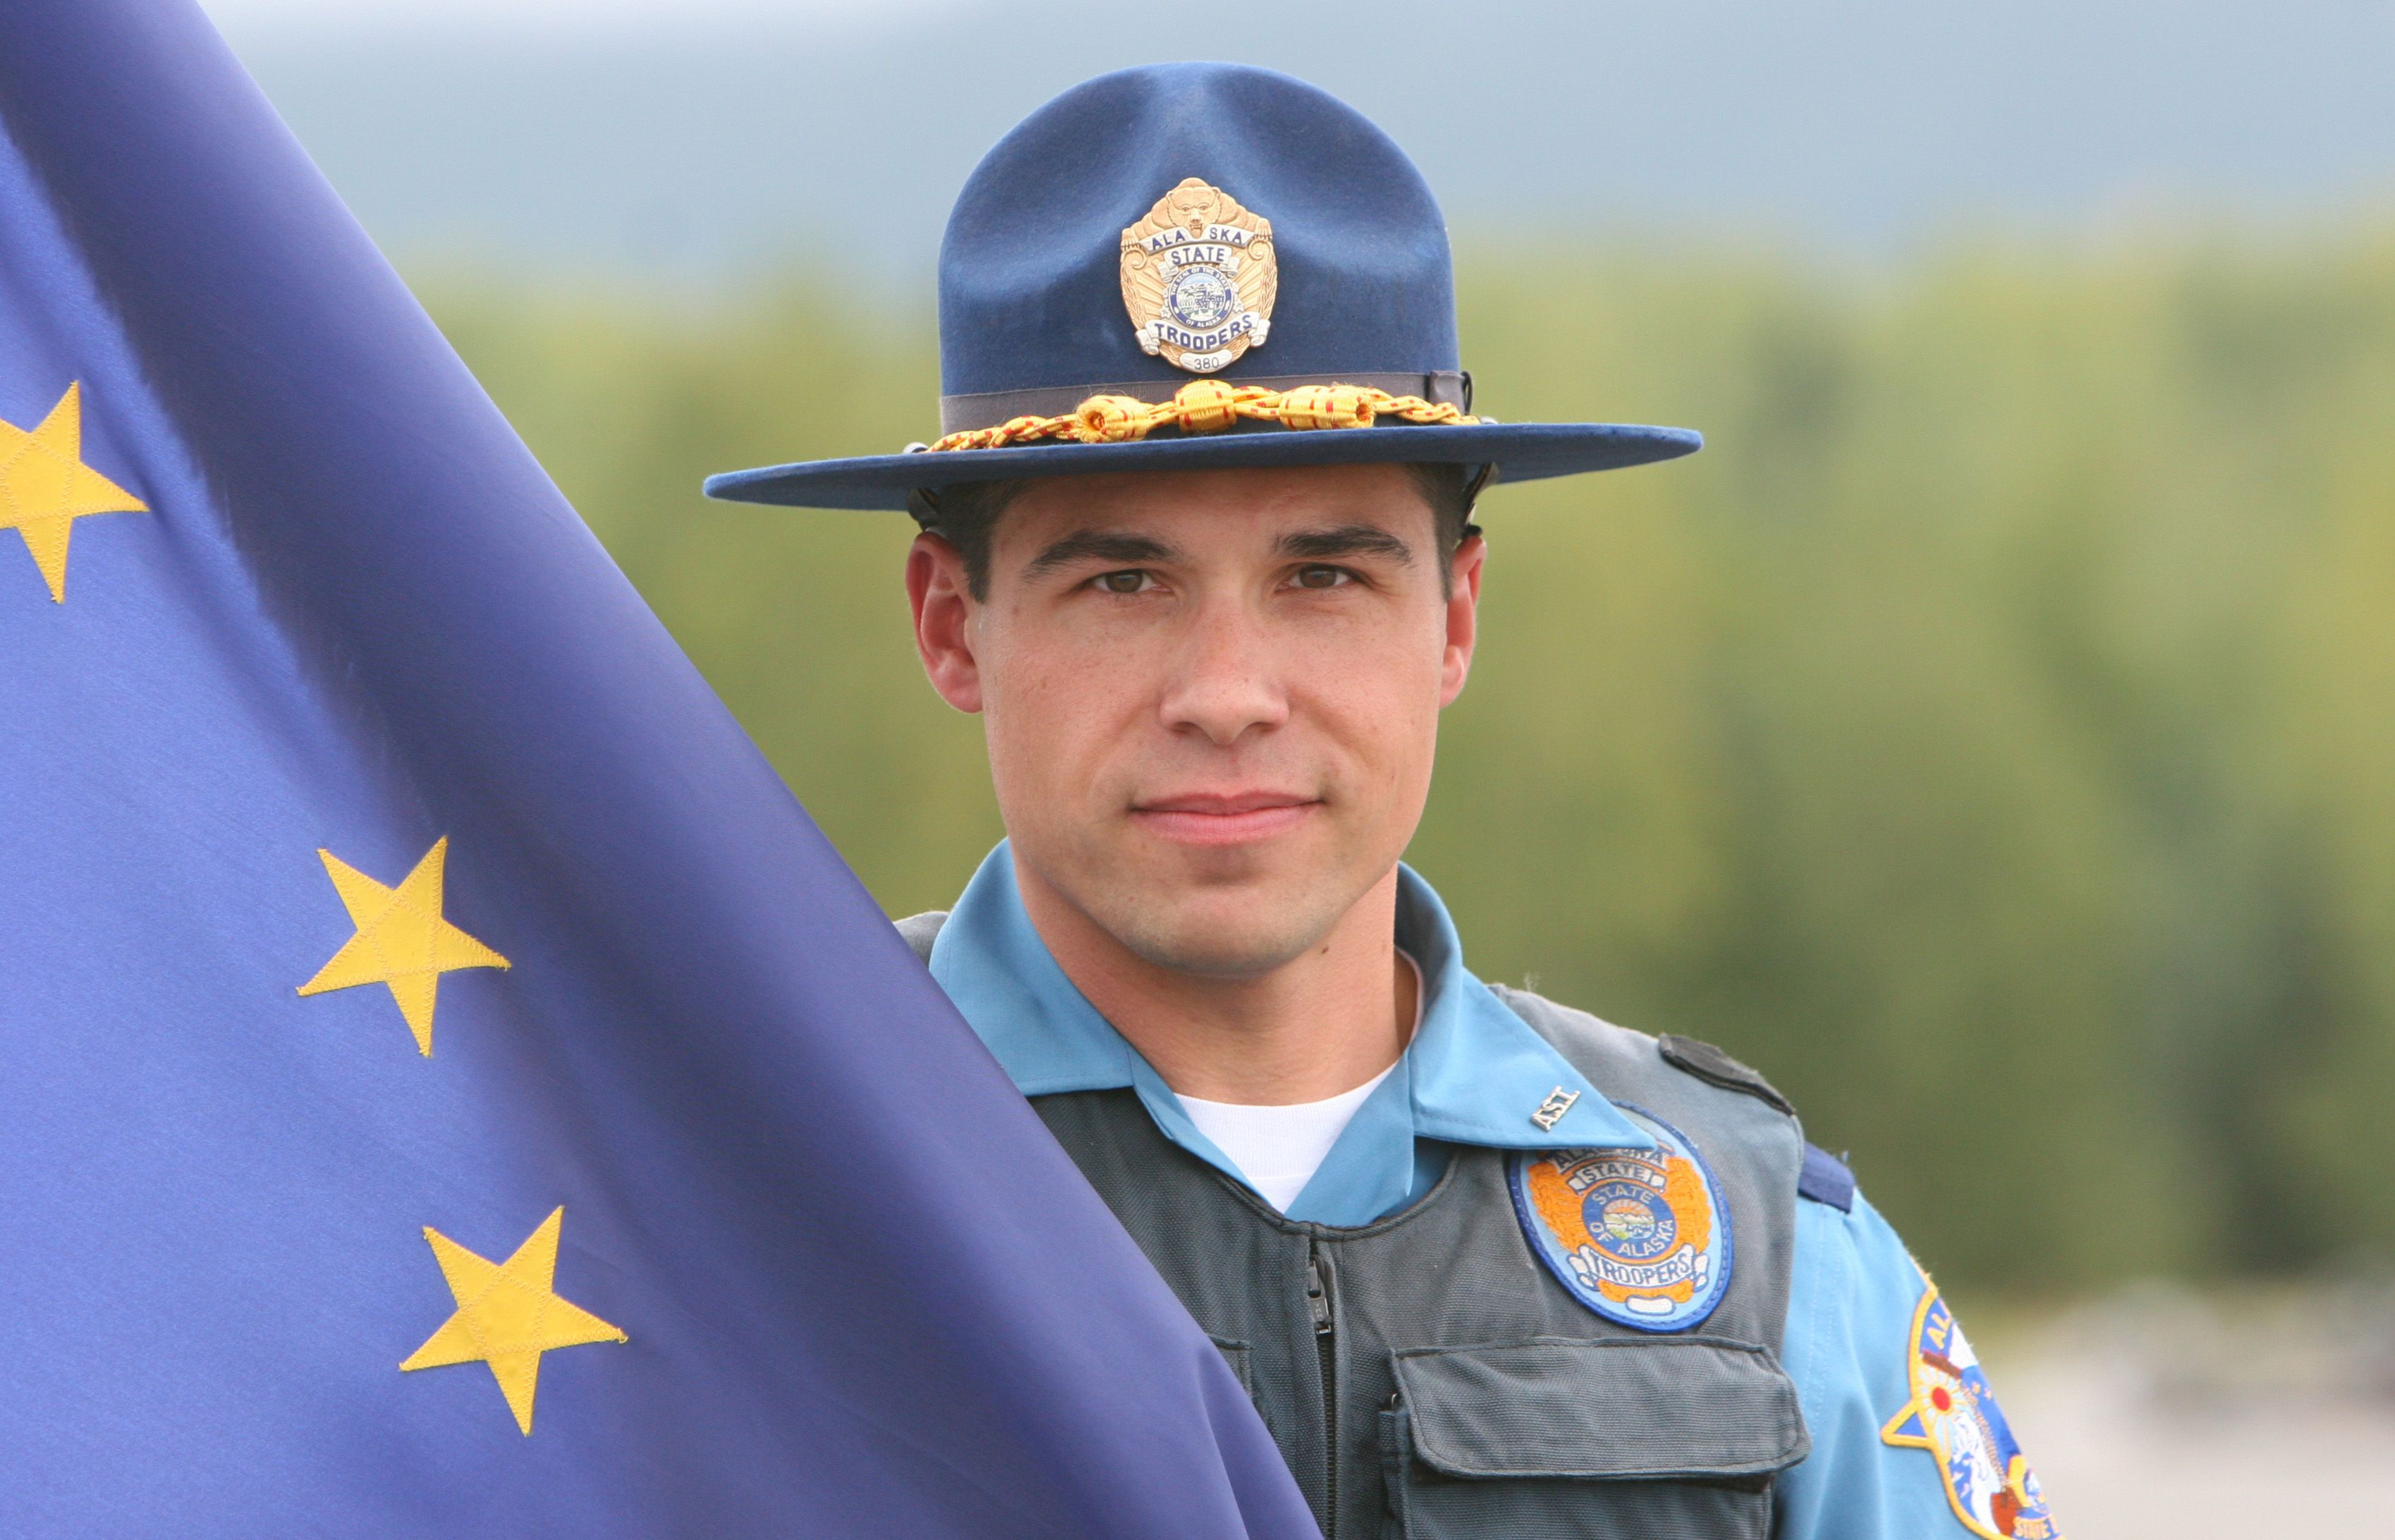 alaska state trooper howie peterson | 08-E Ave Trp